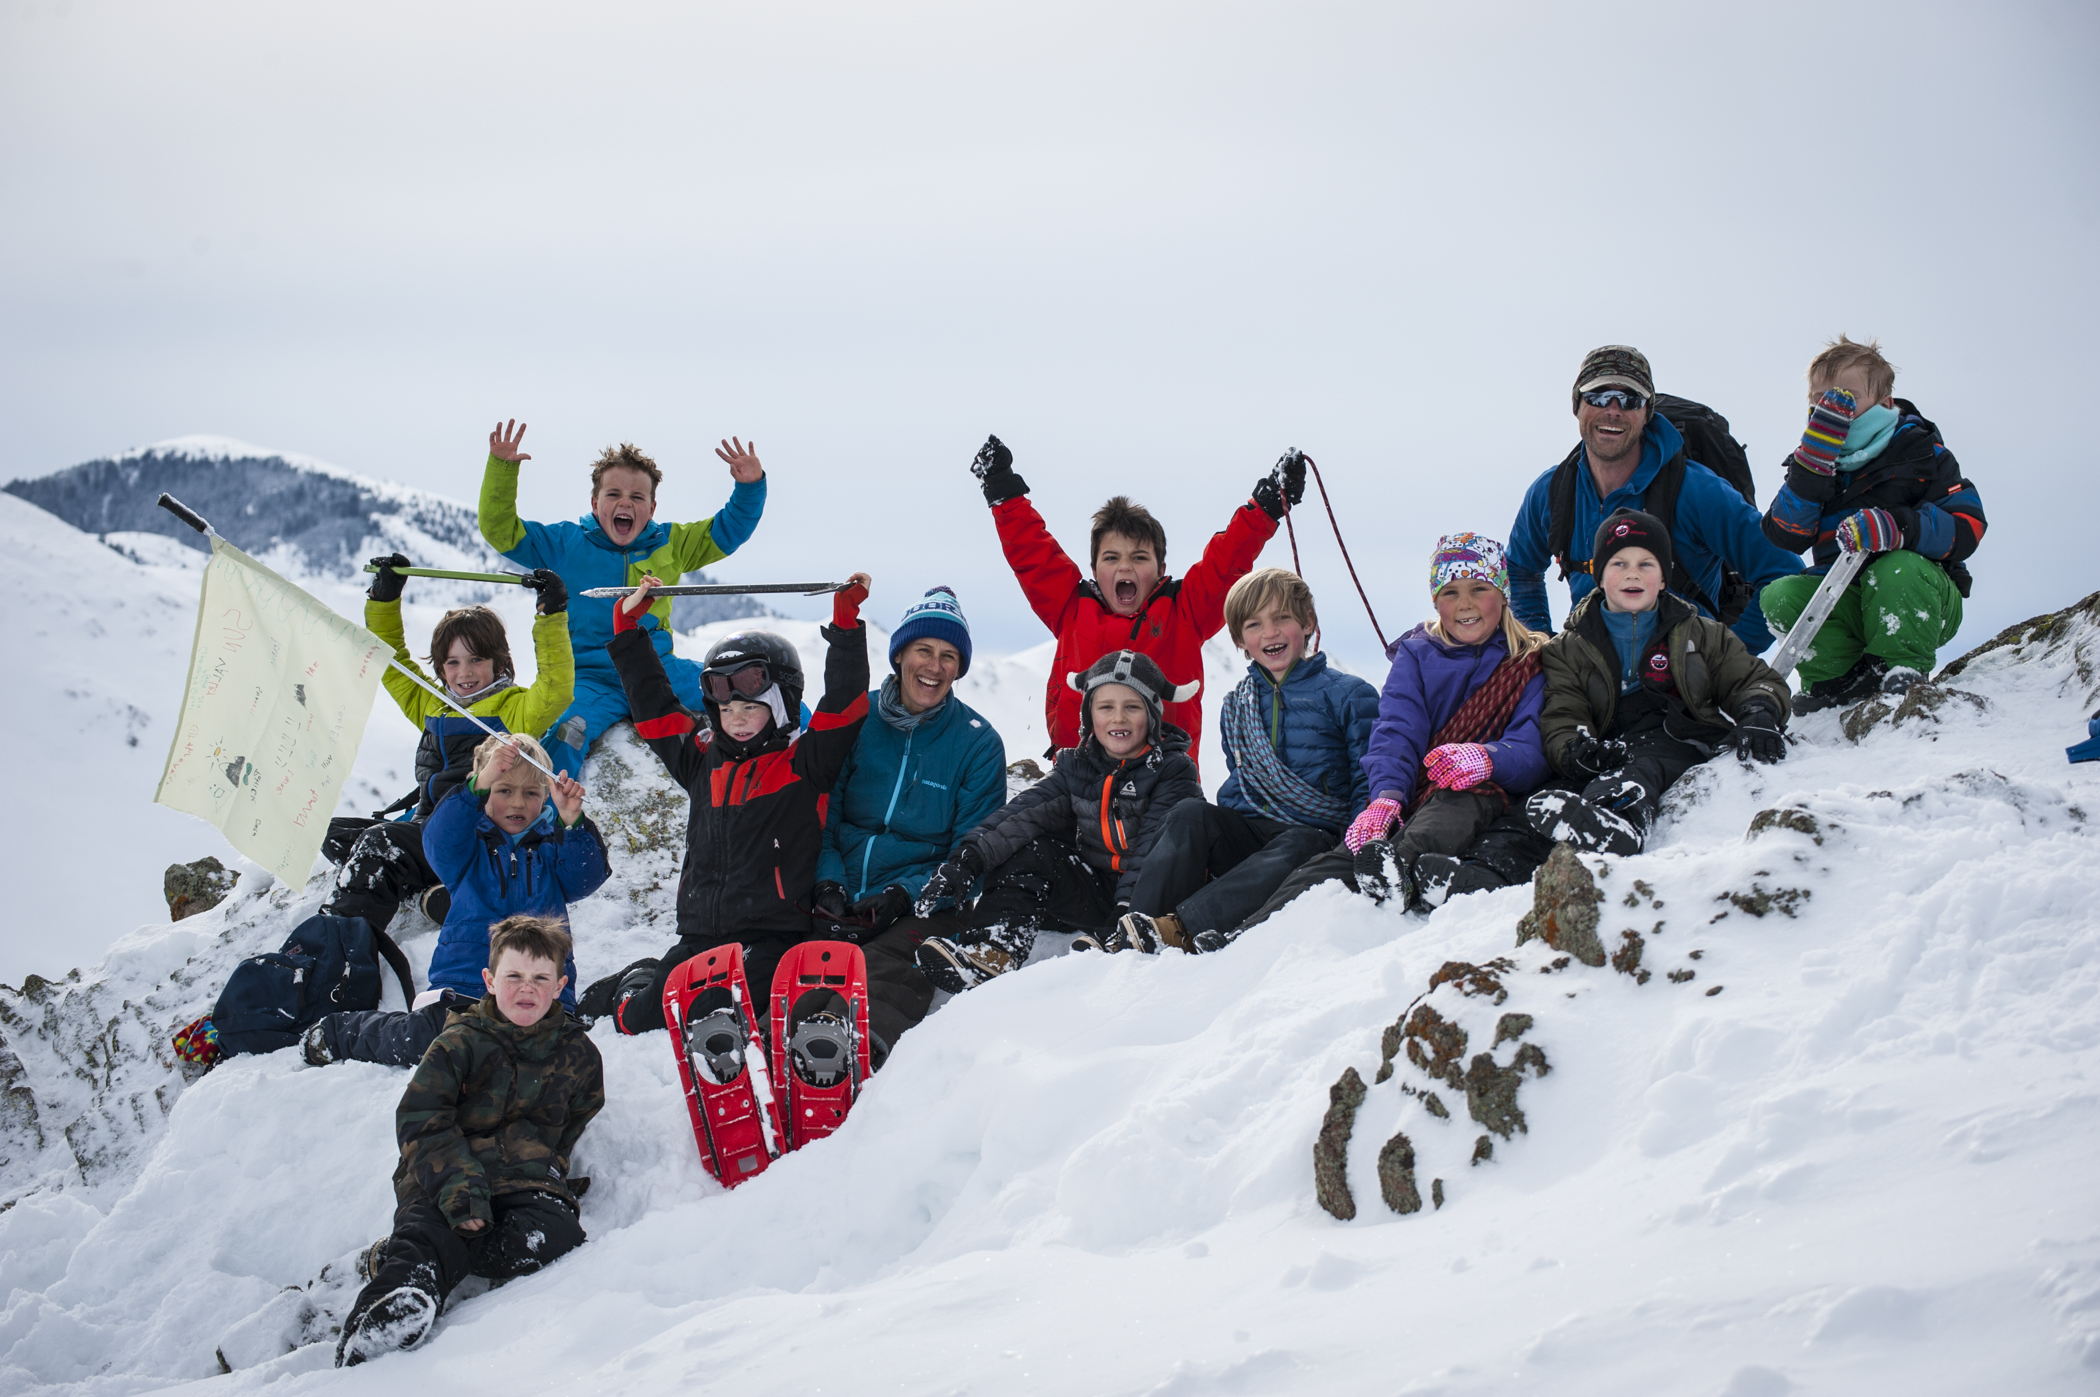 A group of students sitting on a snowy mountain